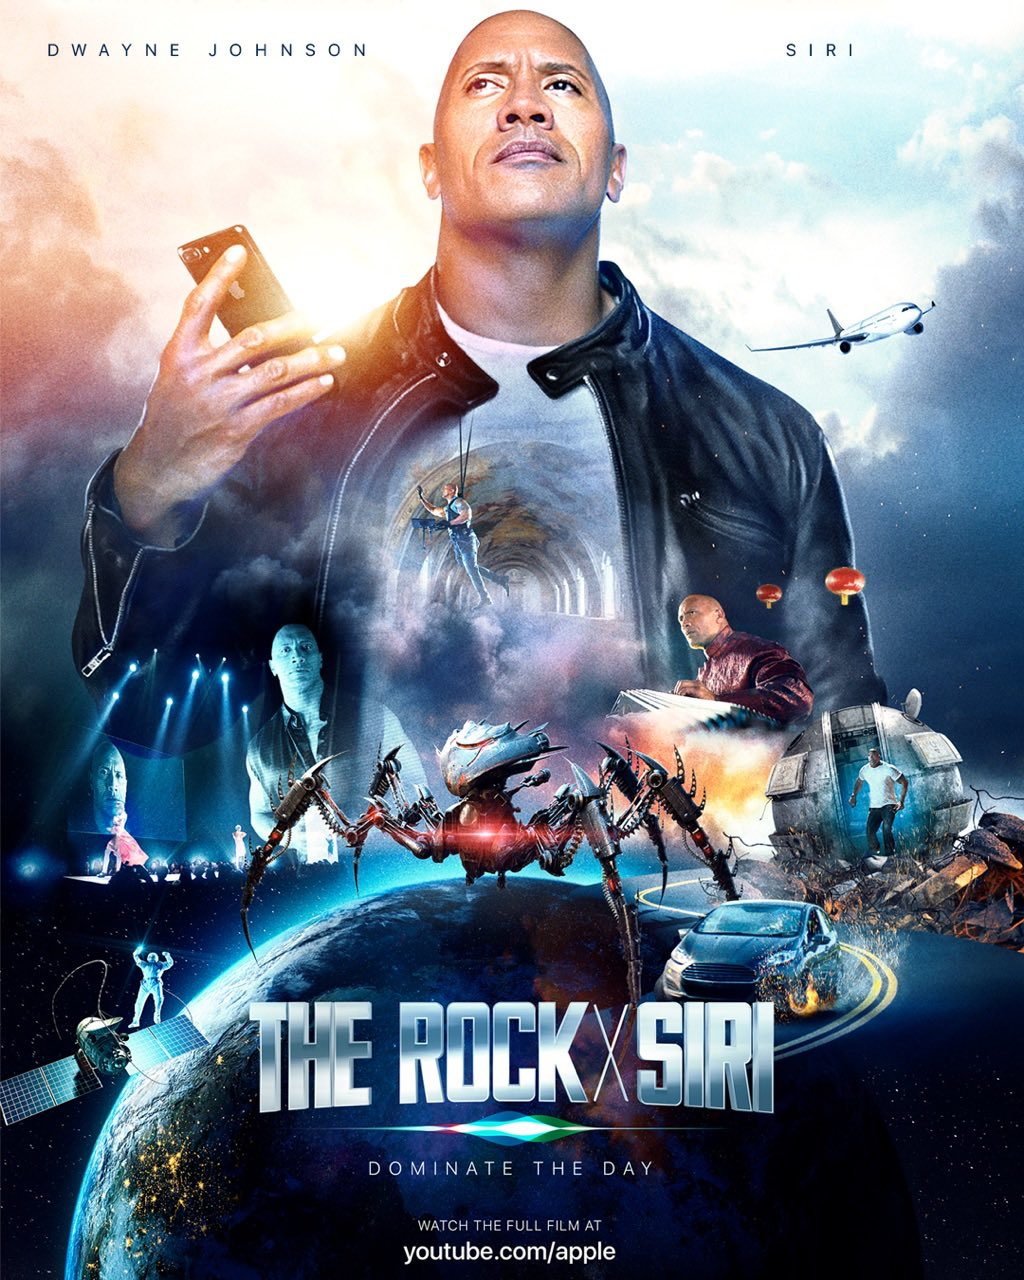 Cartel de la película de The Rock y Siri